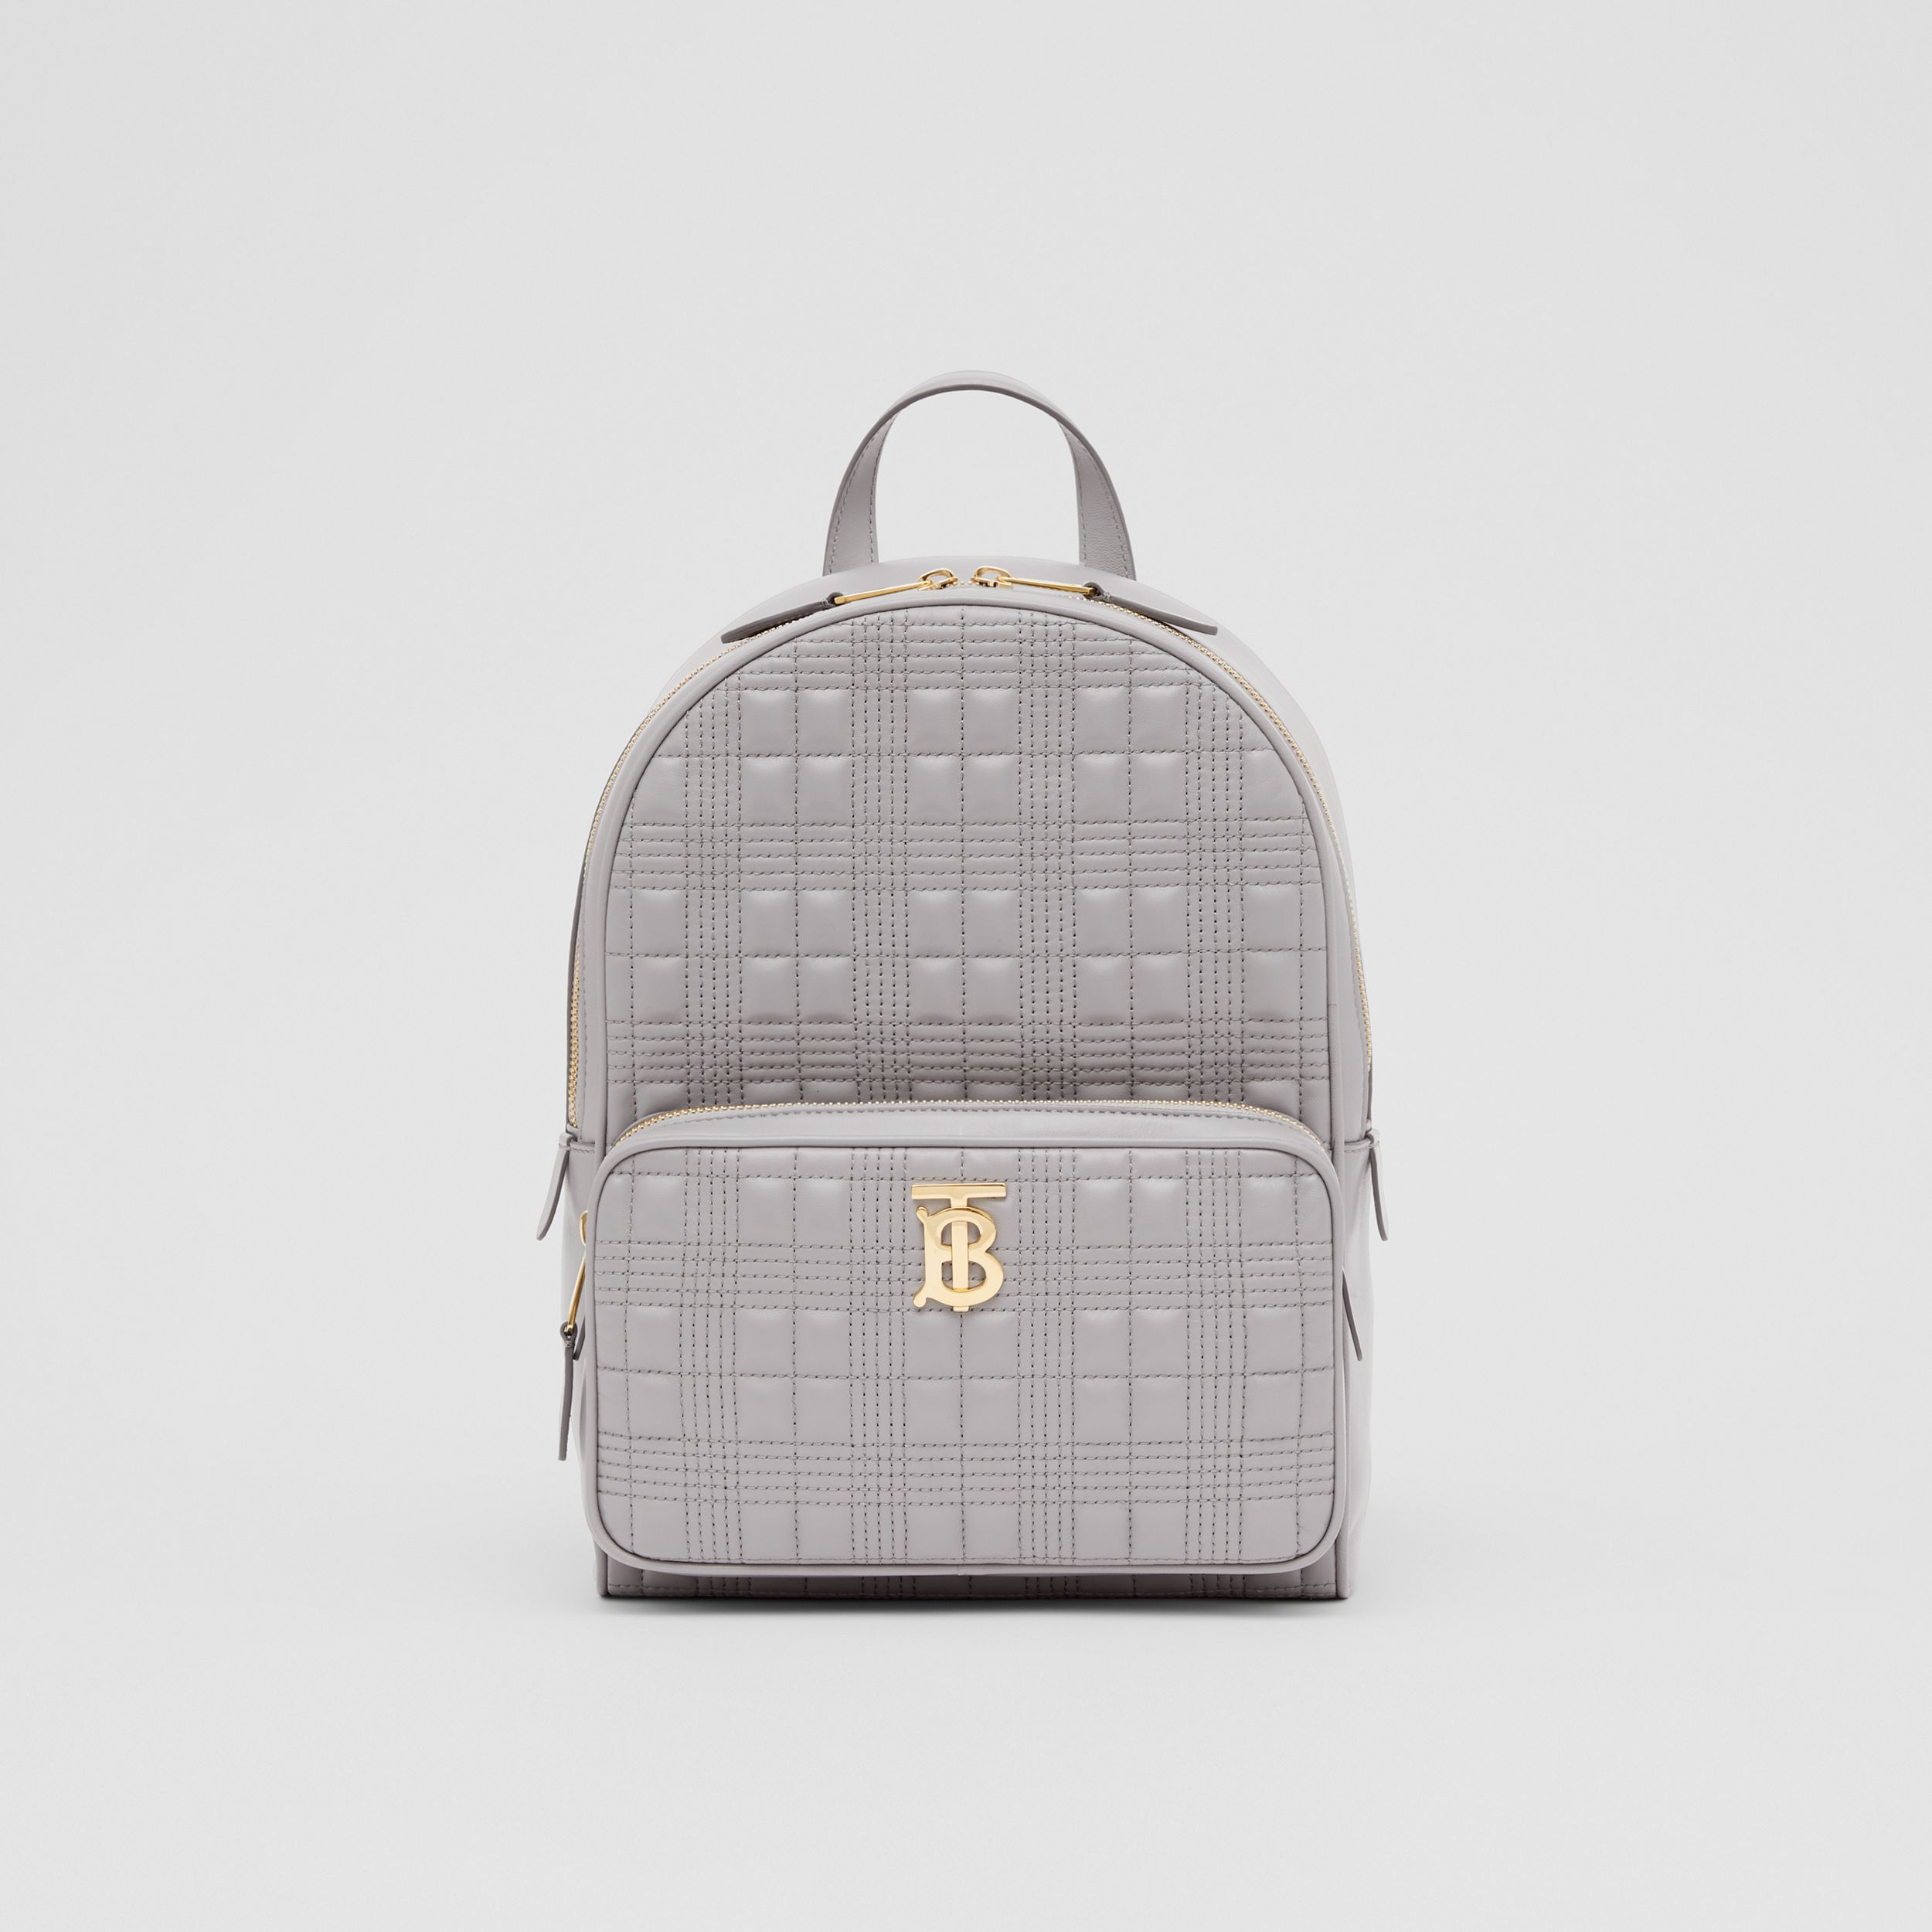 Quilted Lambskin Backpack in Cloud Grey - Women | Burberry - 1